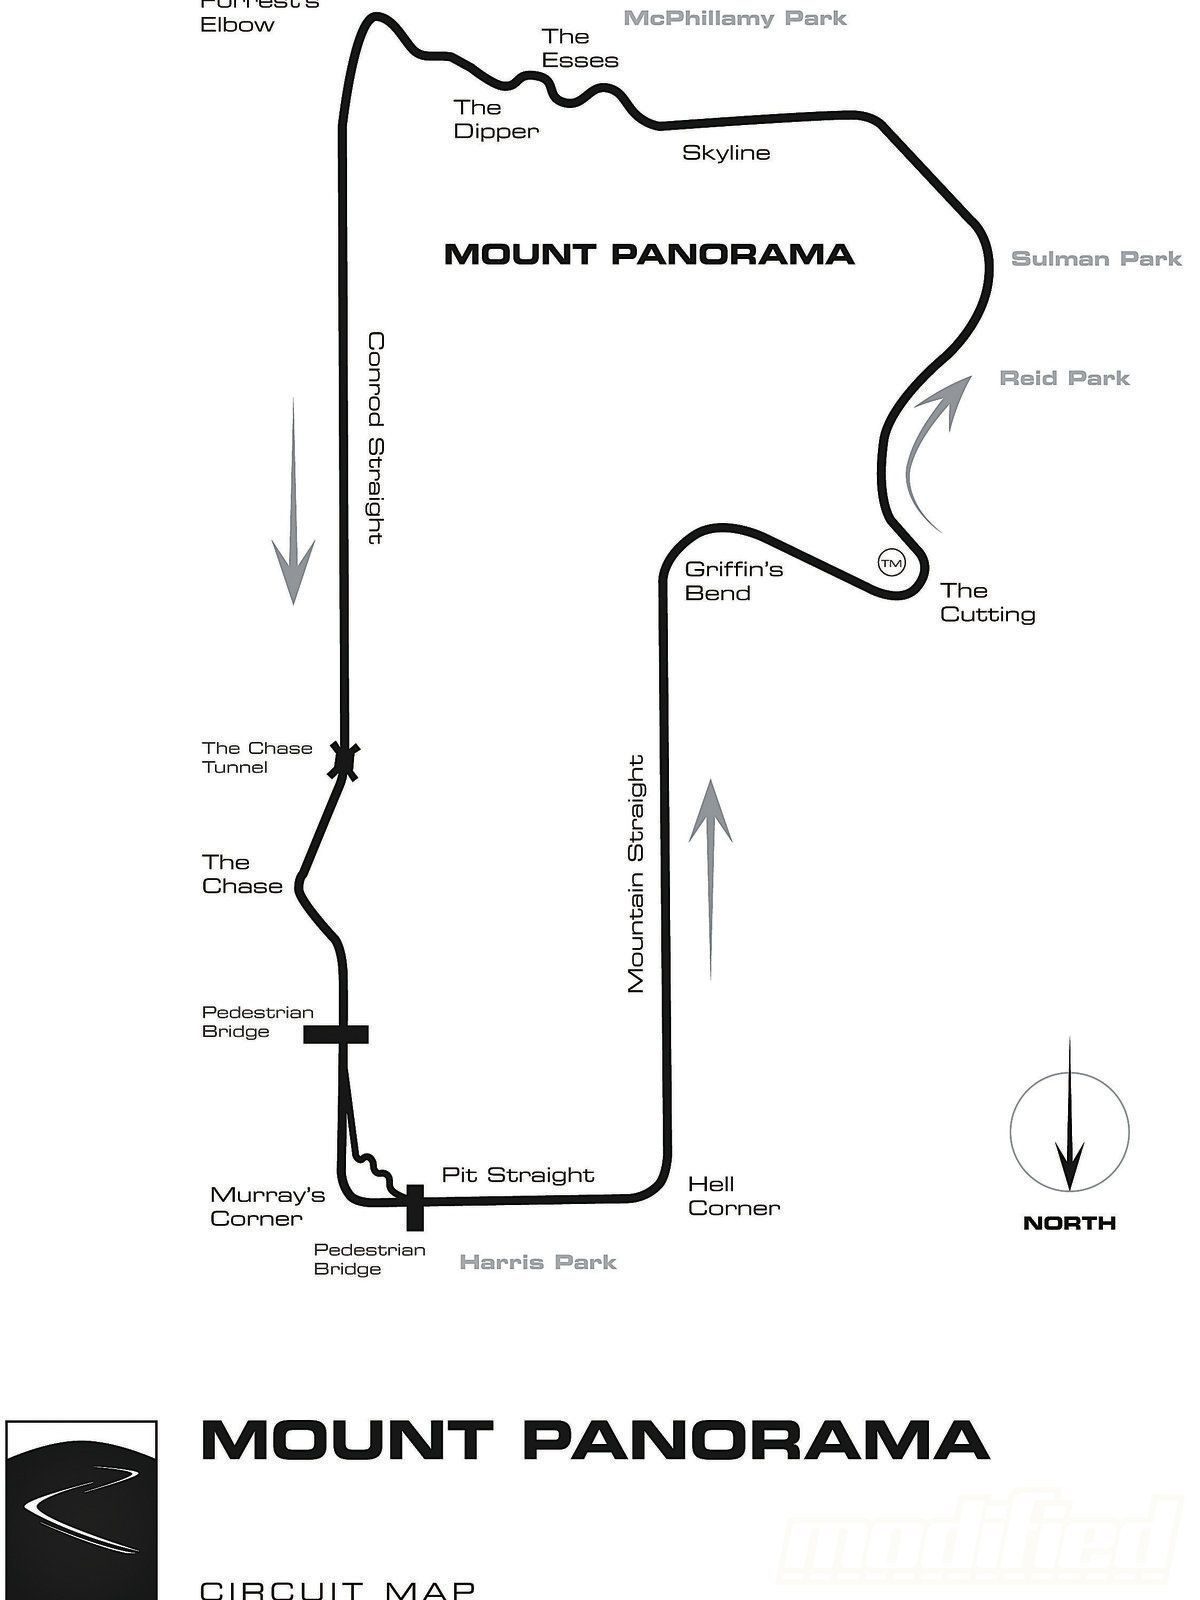 Mt Panorama Bathurst A Great Circuit That The Map Doesn